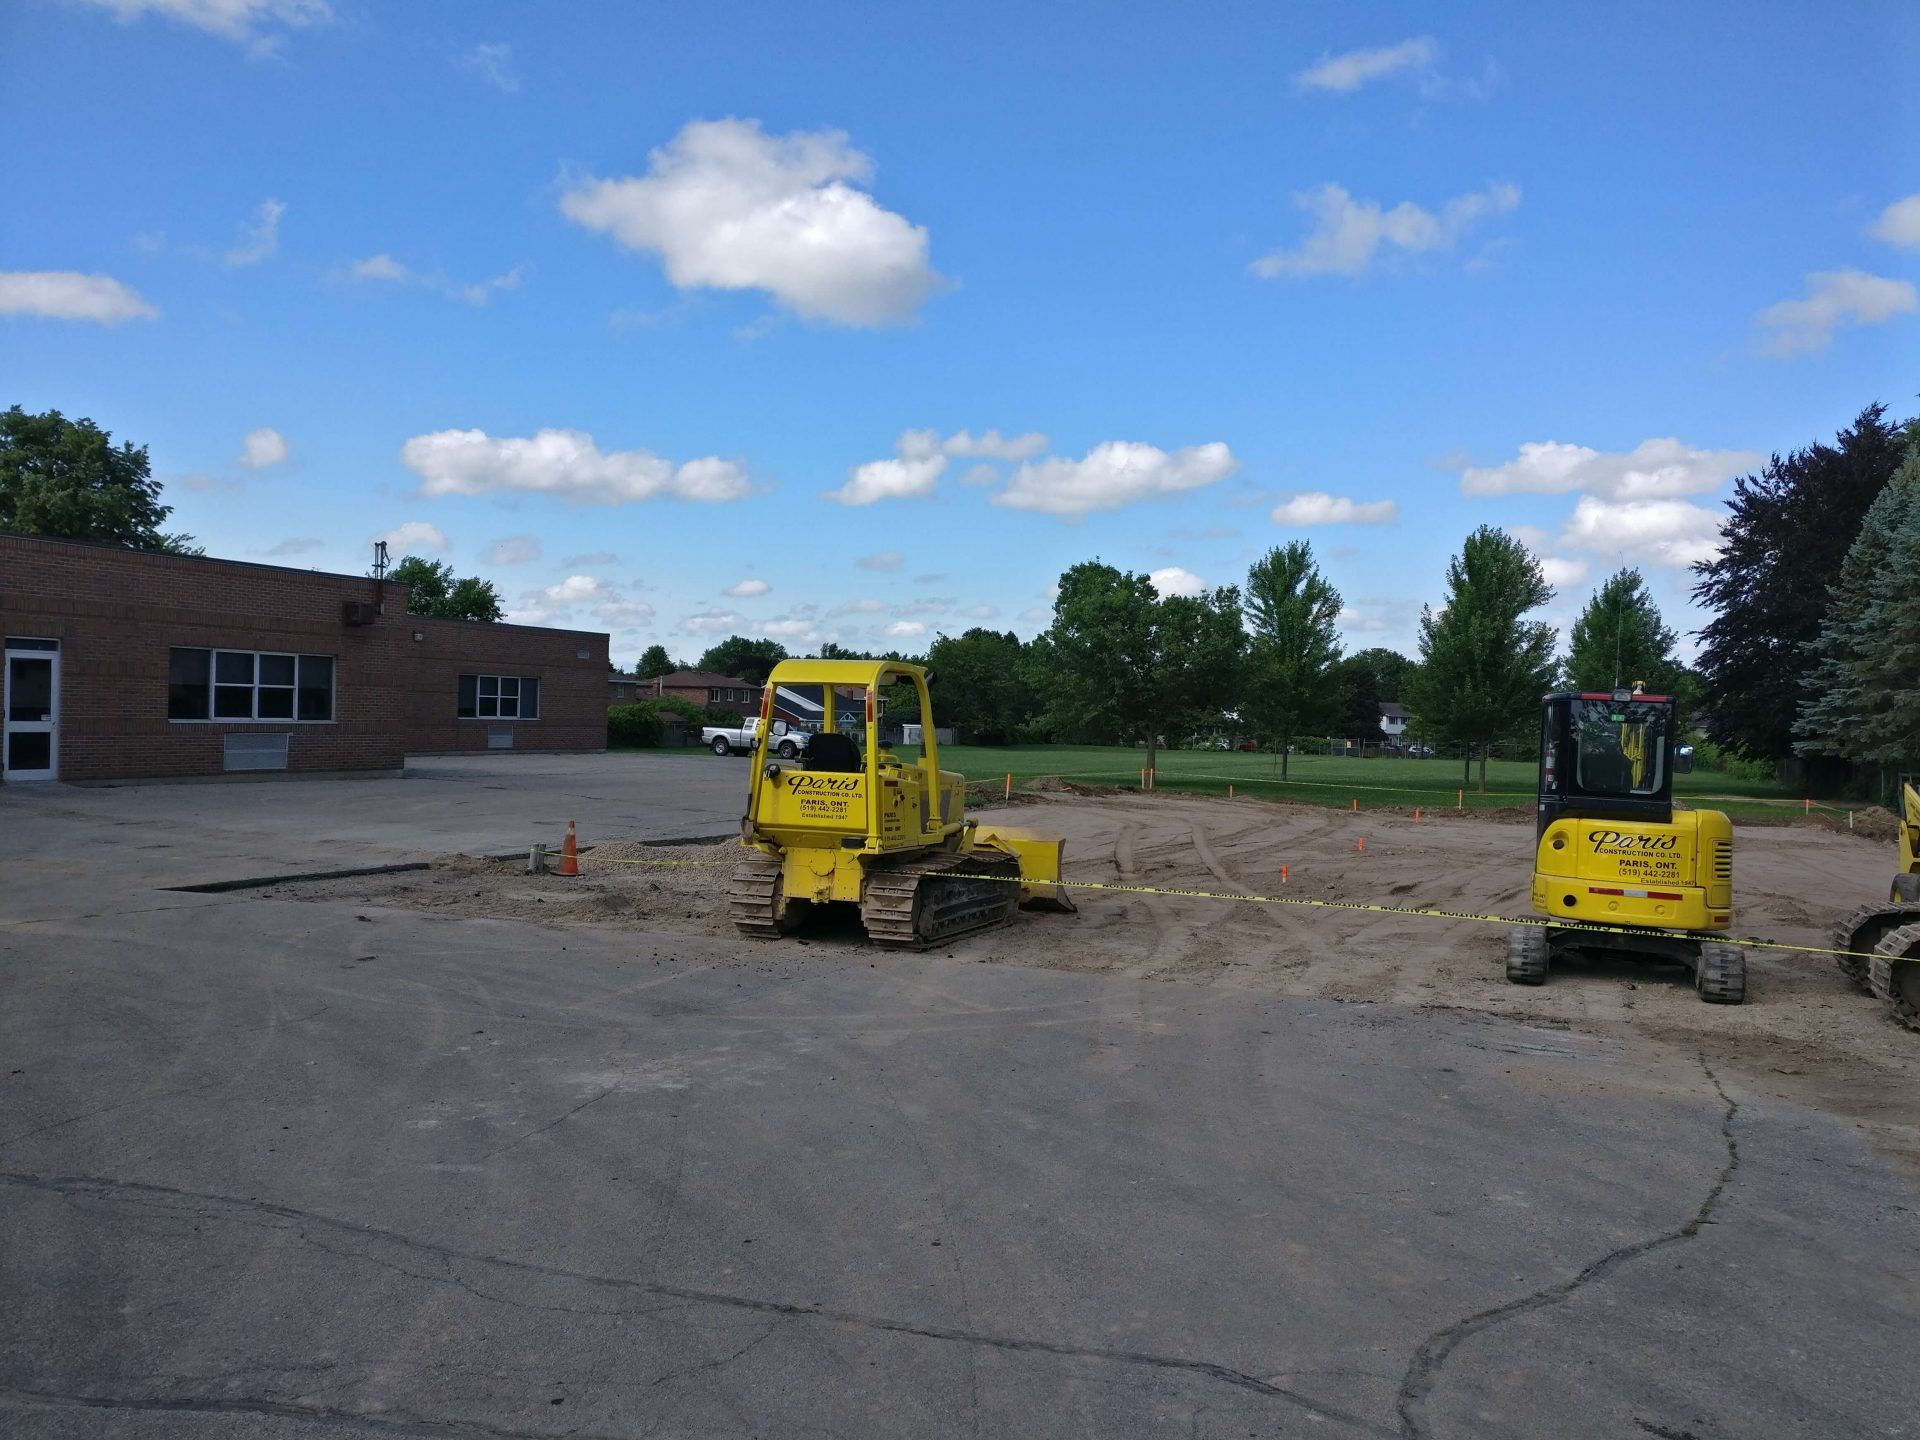 unpaved lot with construction machinery